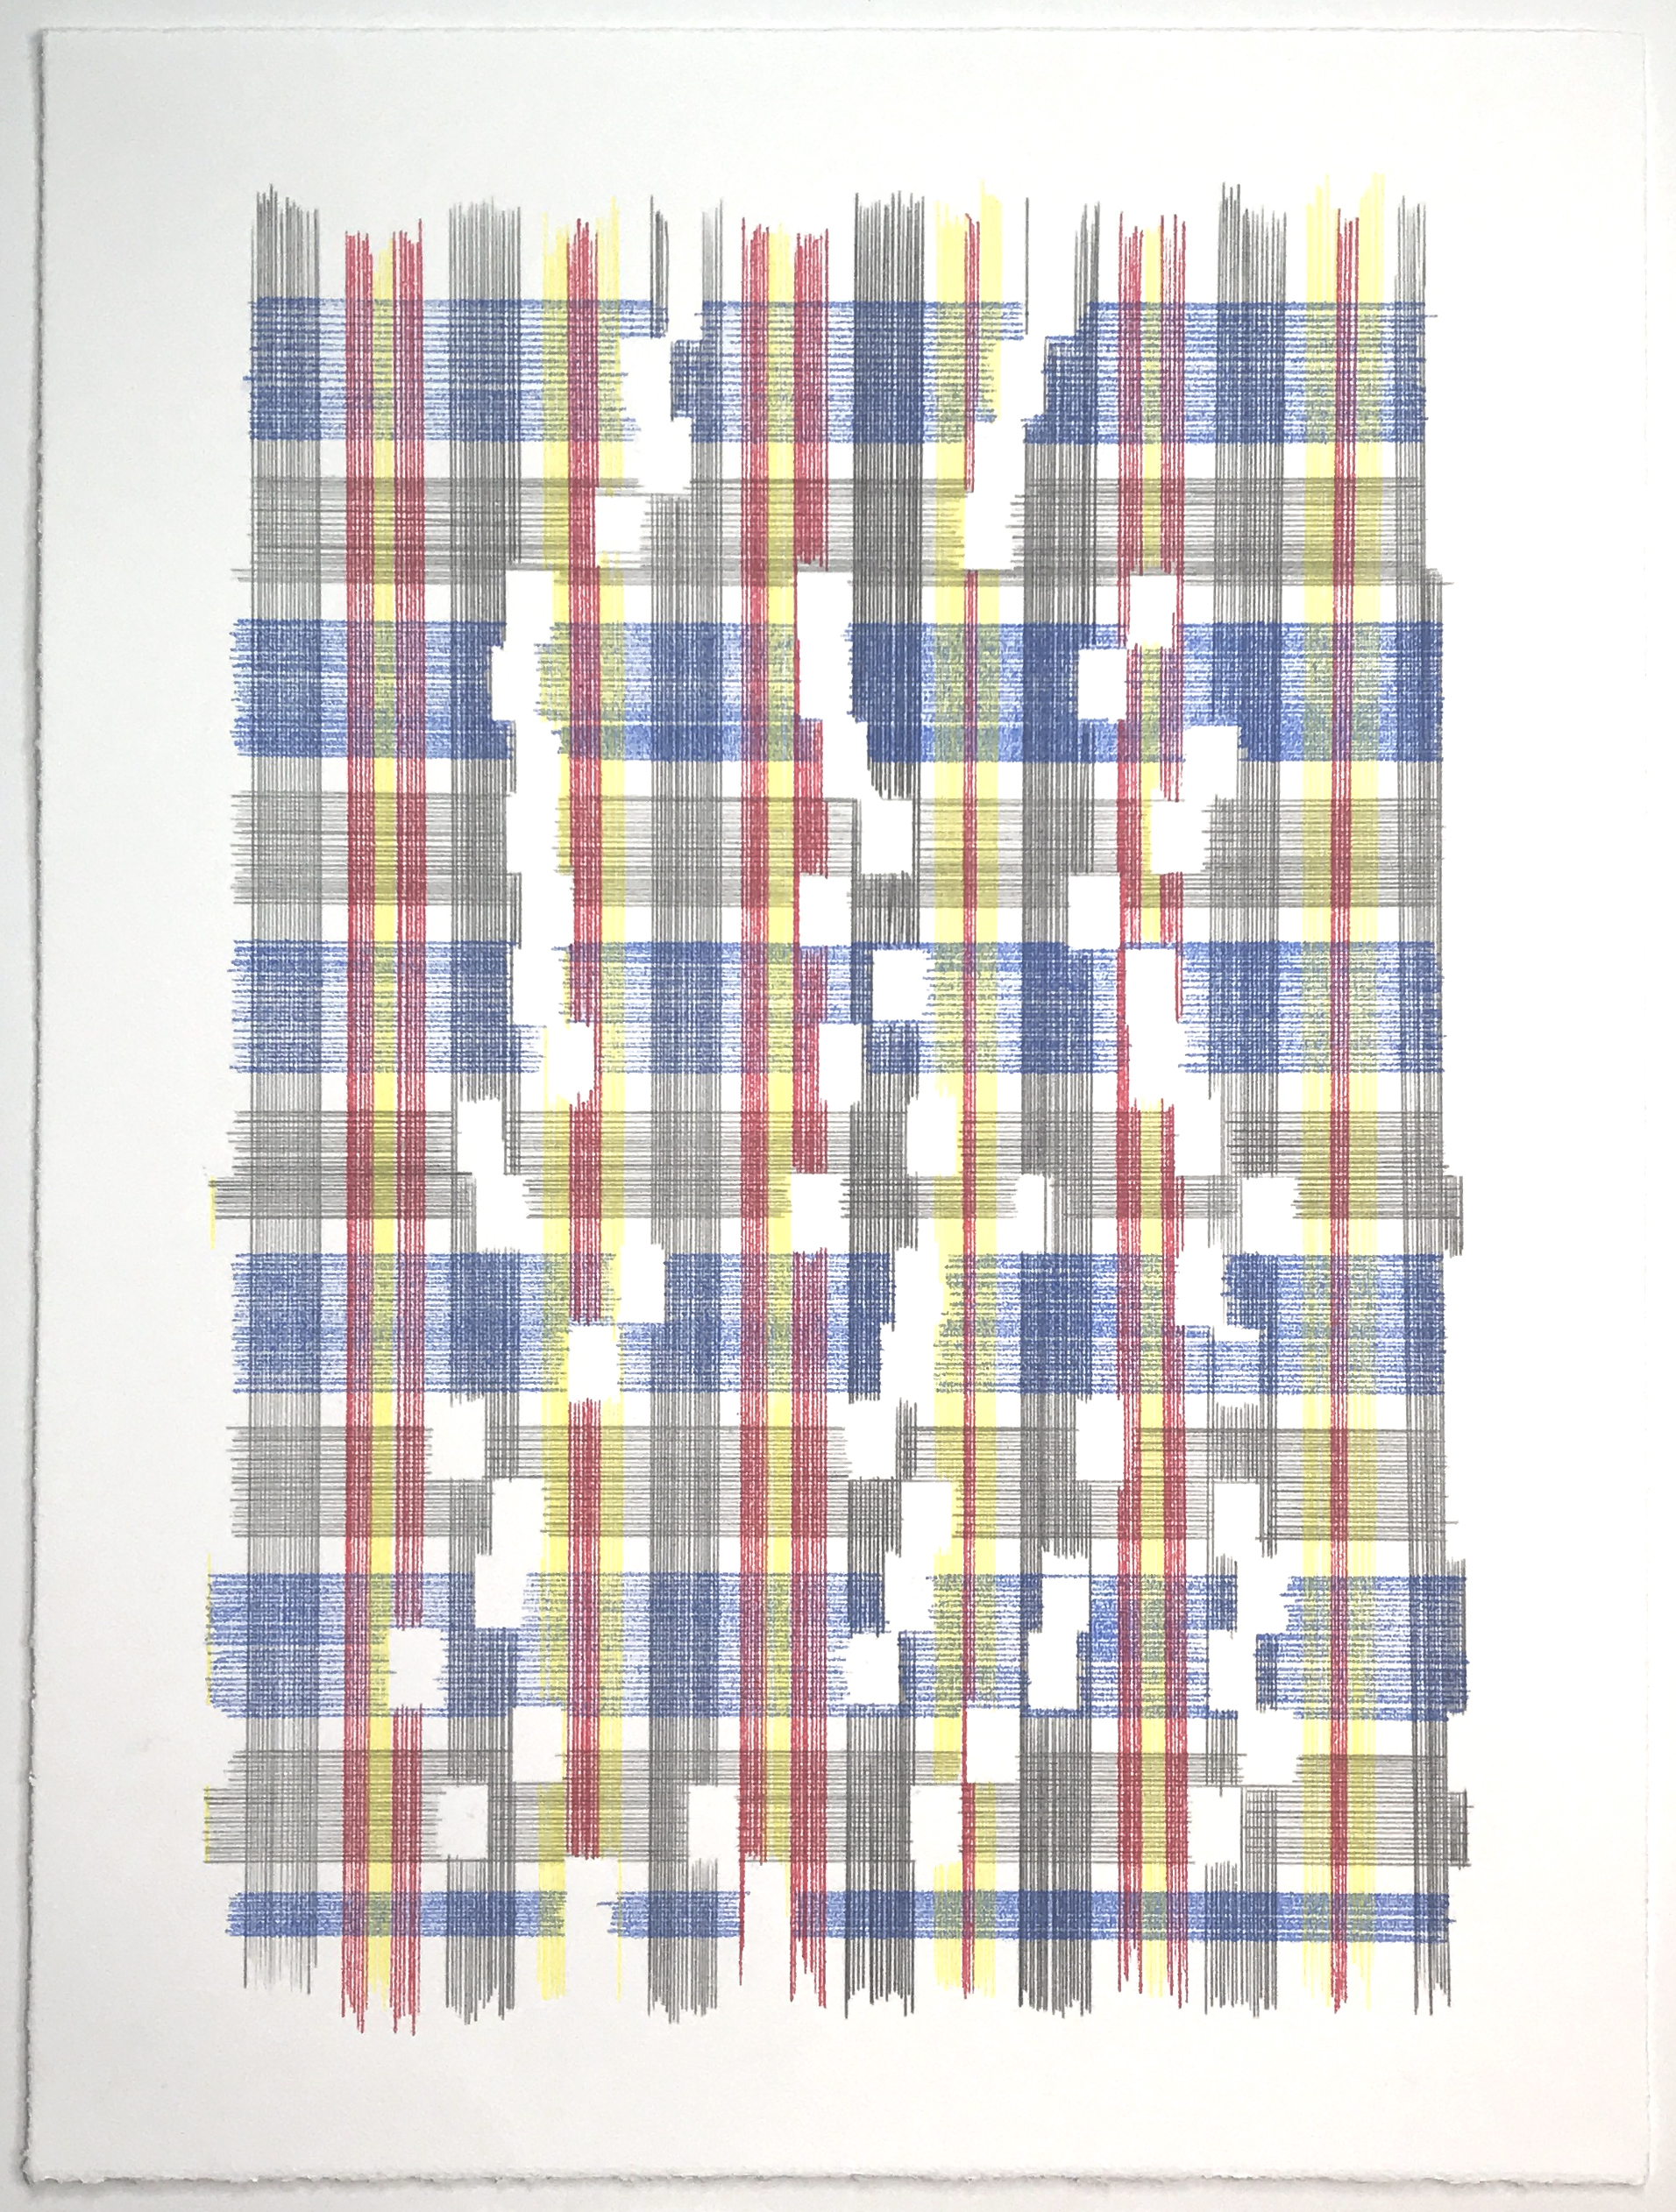 Evidence Of Supersymmetry (Plaid), 2018 Transfer pigment on paper; 15 x 20 inches